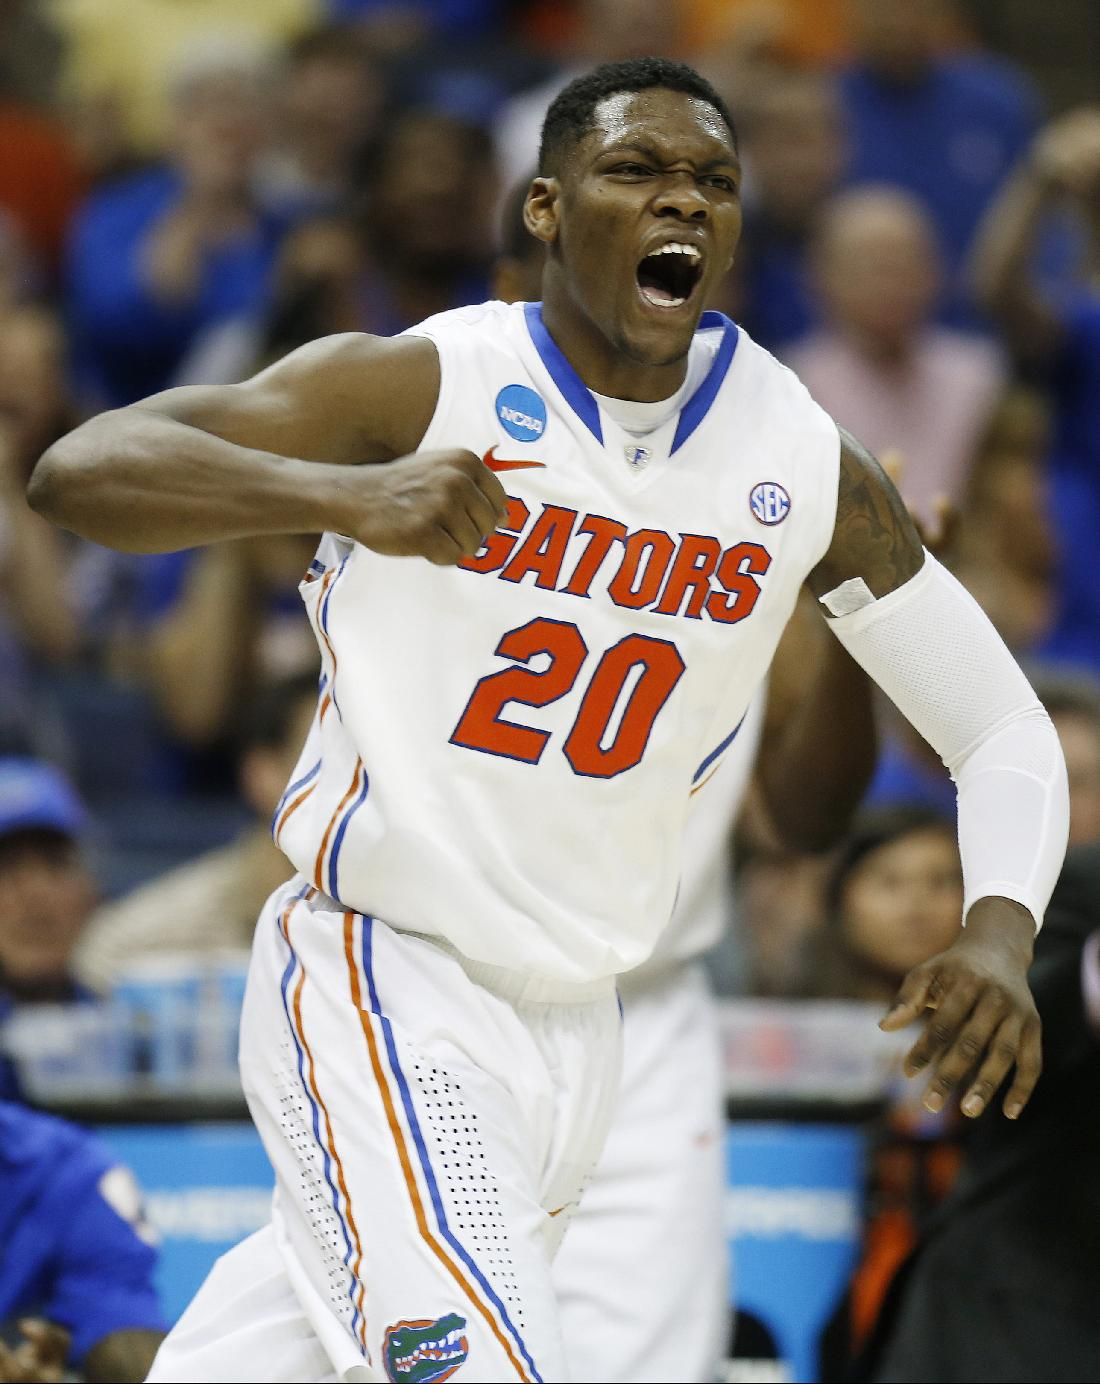 Sharp-shooting Frazier a huge threat for Florida